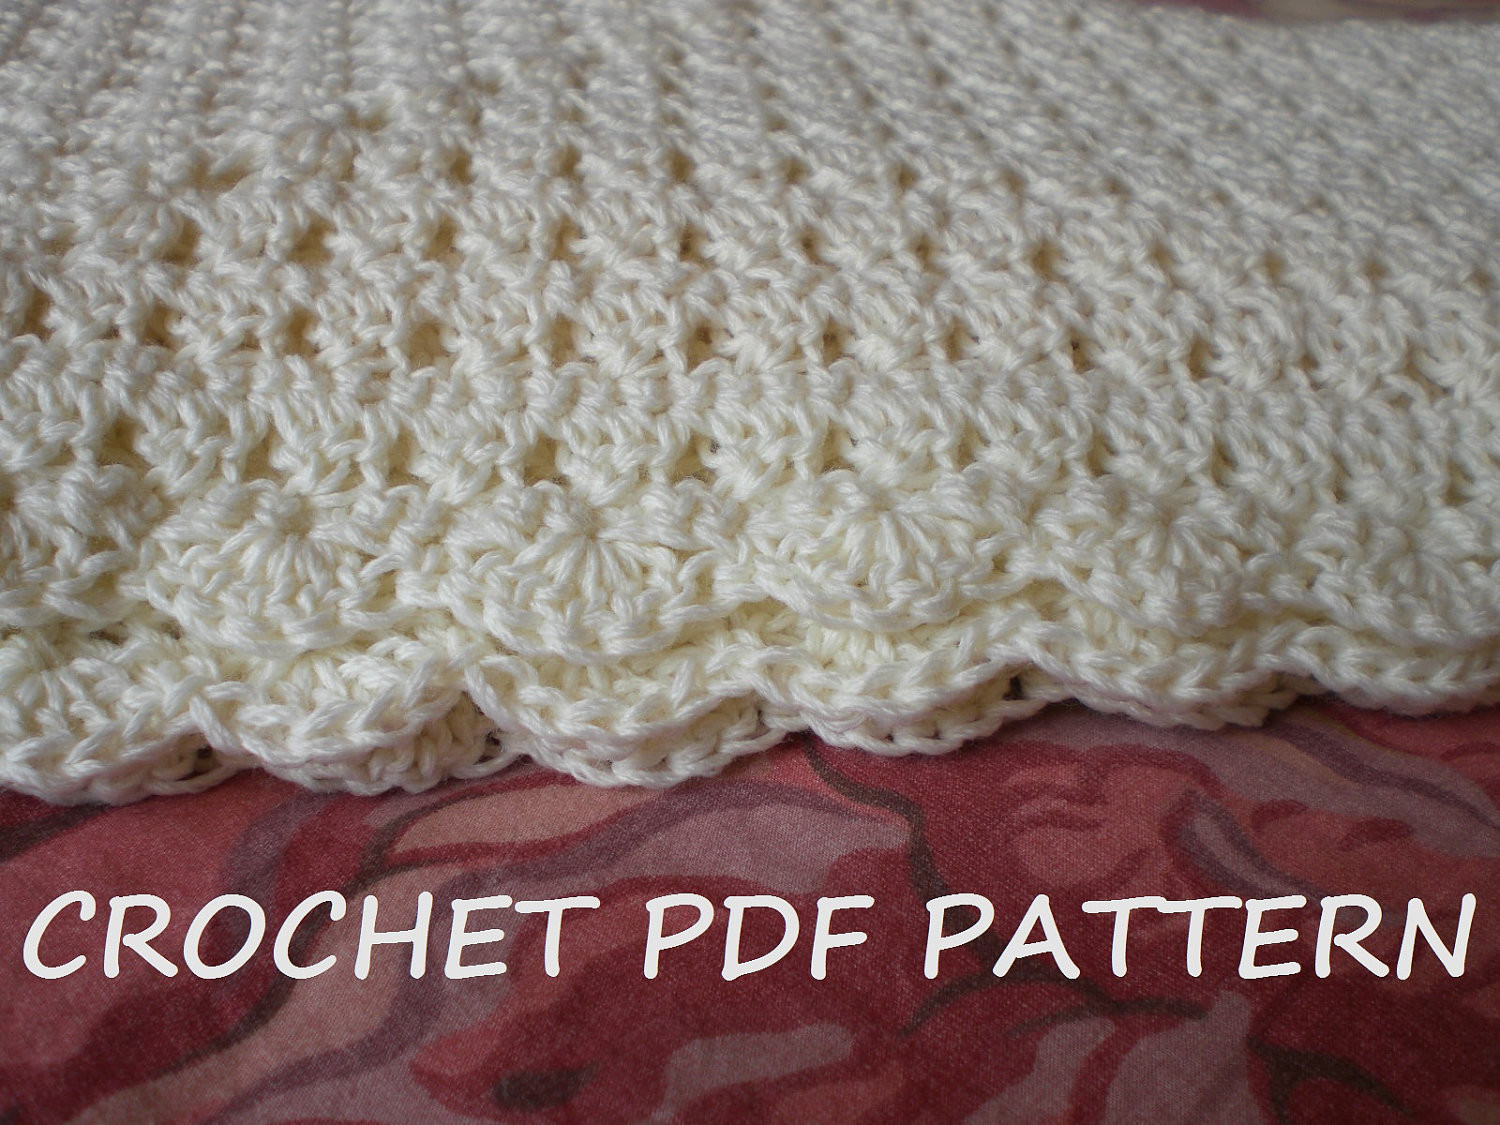 Afghan Crochet Patterns for Beginners Awesome Baby Blanket Crochet Patterns for Beginners Of Amazing 48 Models Afghan Crochet Patterns for Beginners